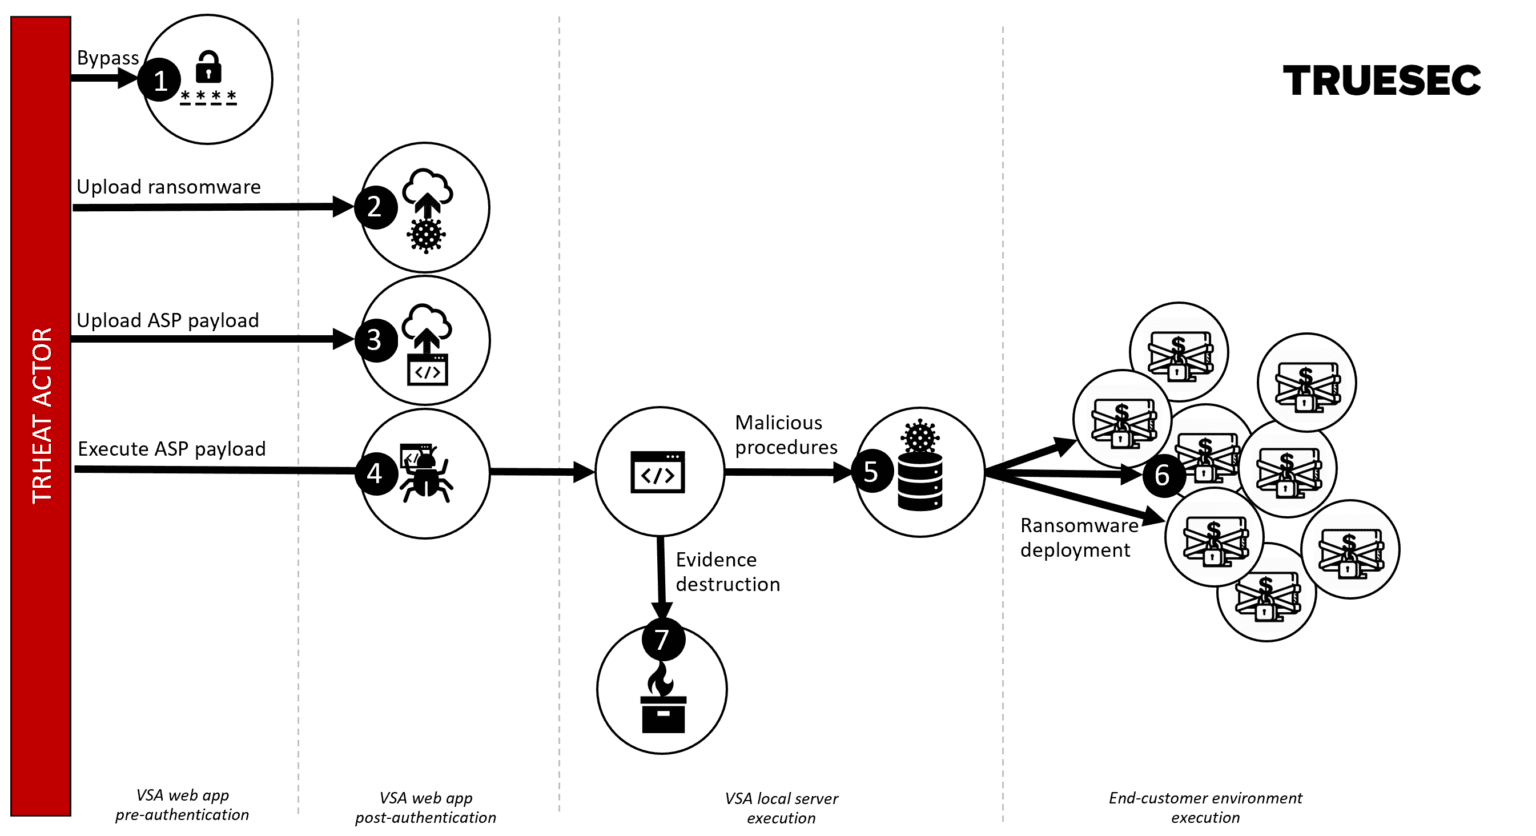 The exploit abused four vulnerabilities in the Kaseya application that were chained as visualized here